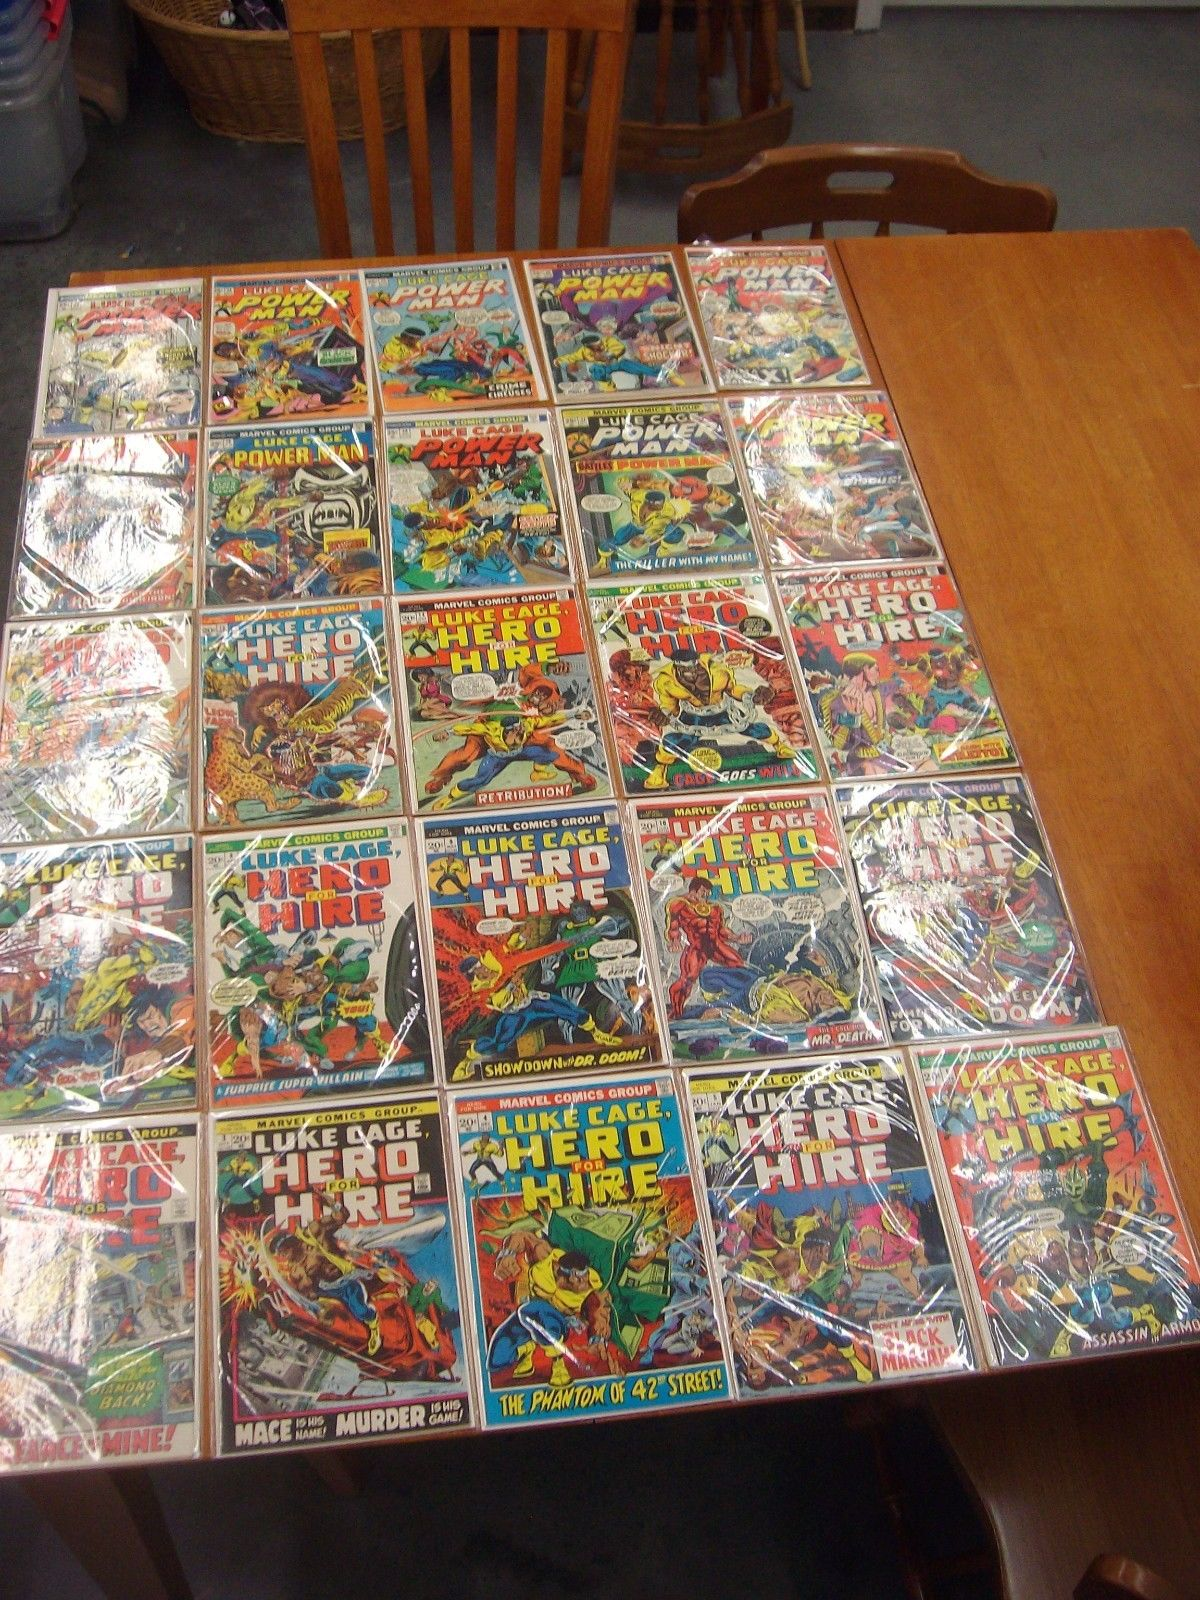 Marvel Luke Cage Hero For Hire/Power Man/Power Man and Iron Fist Lot of 122